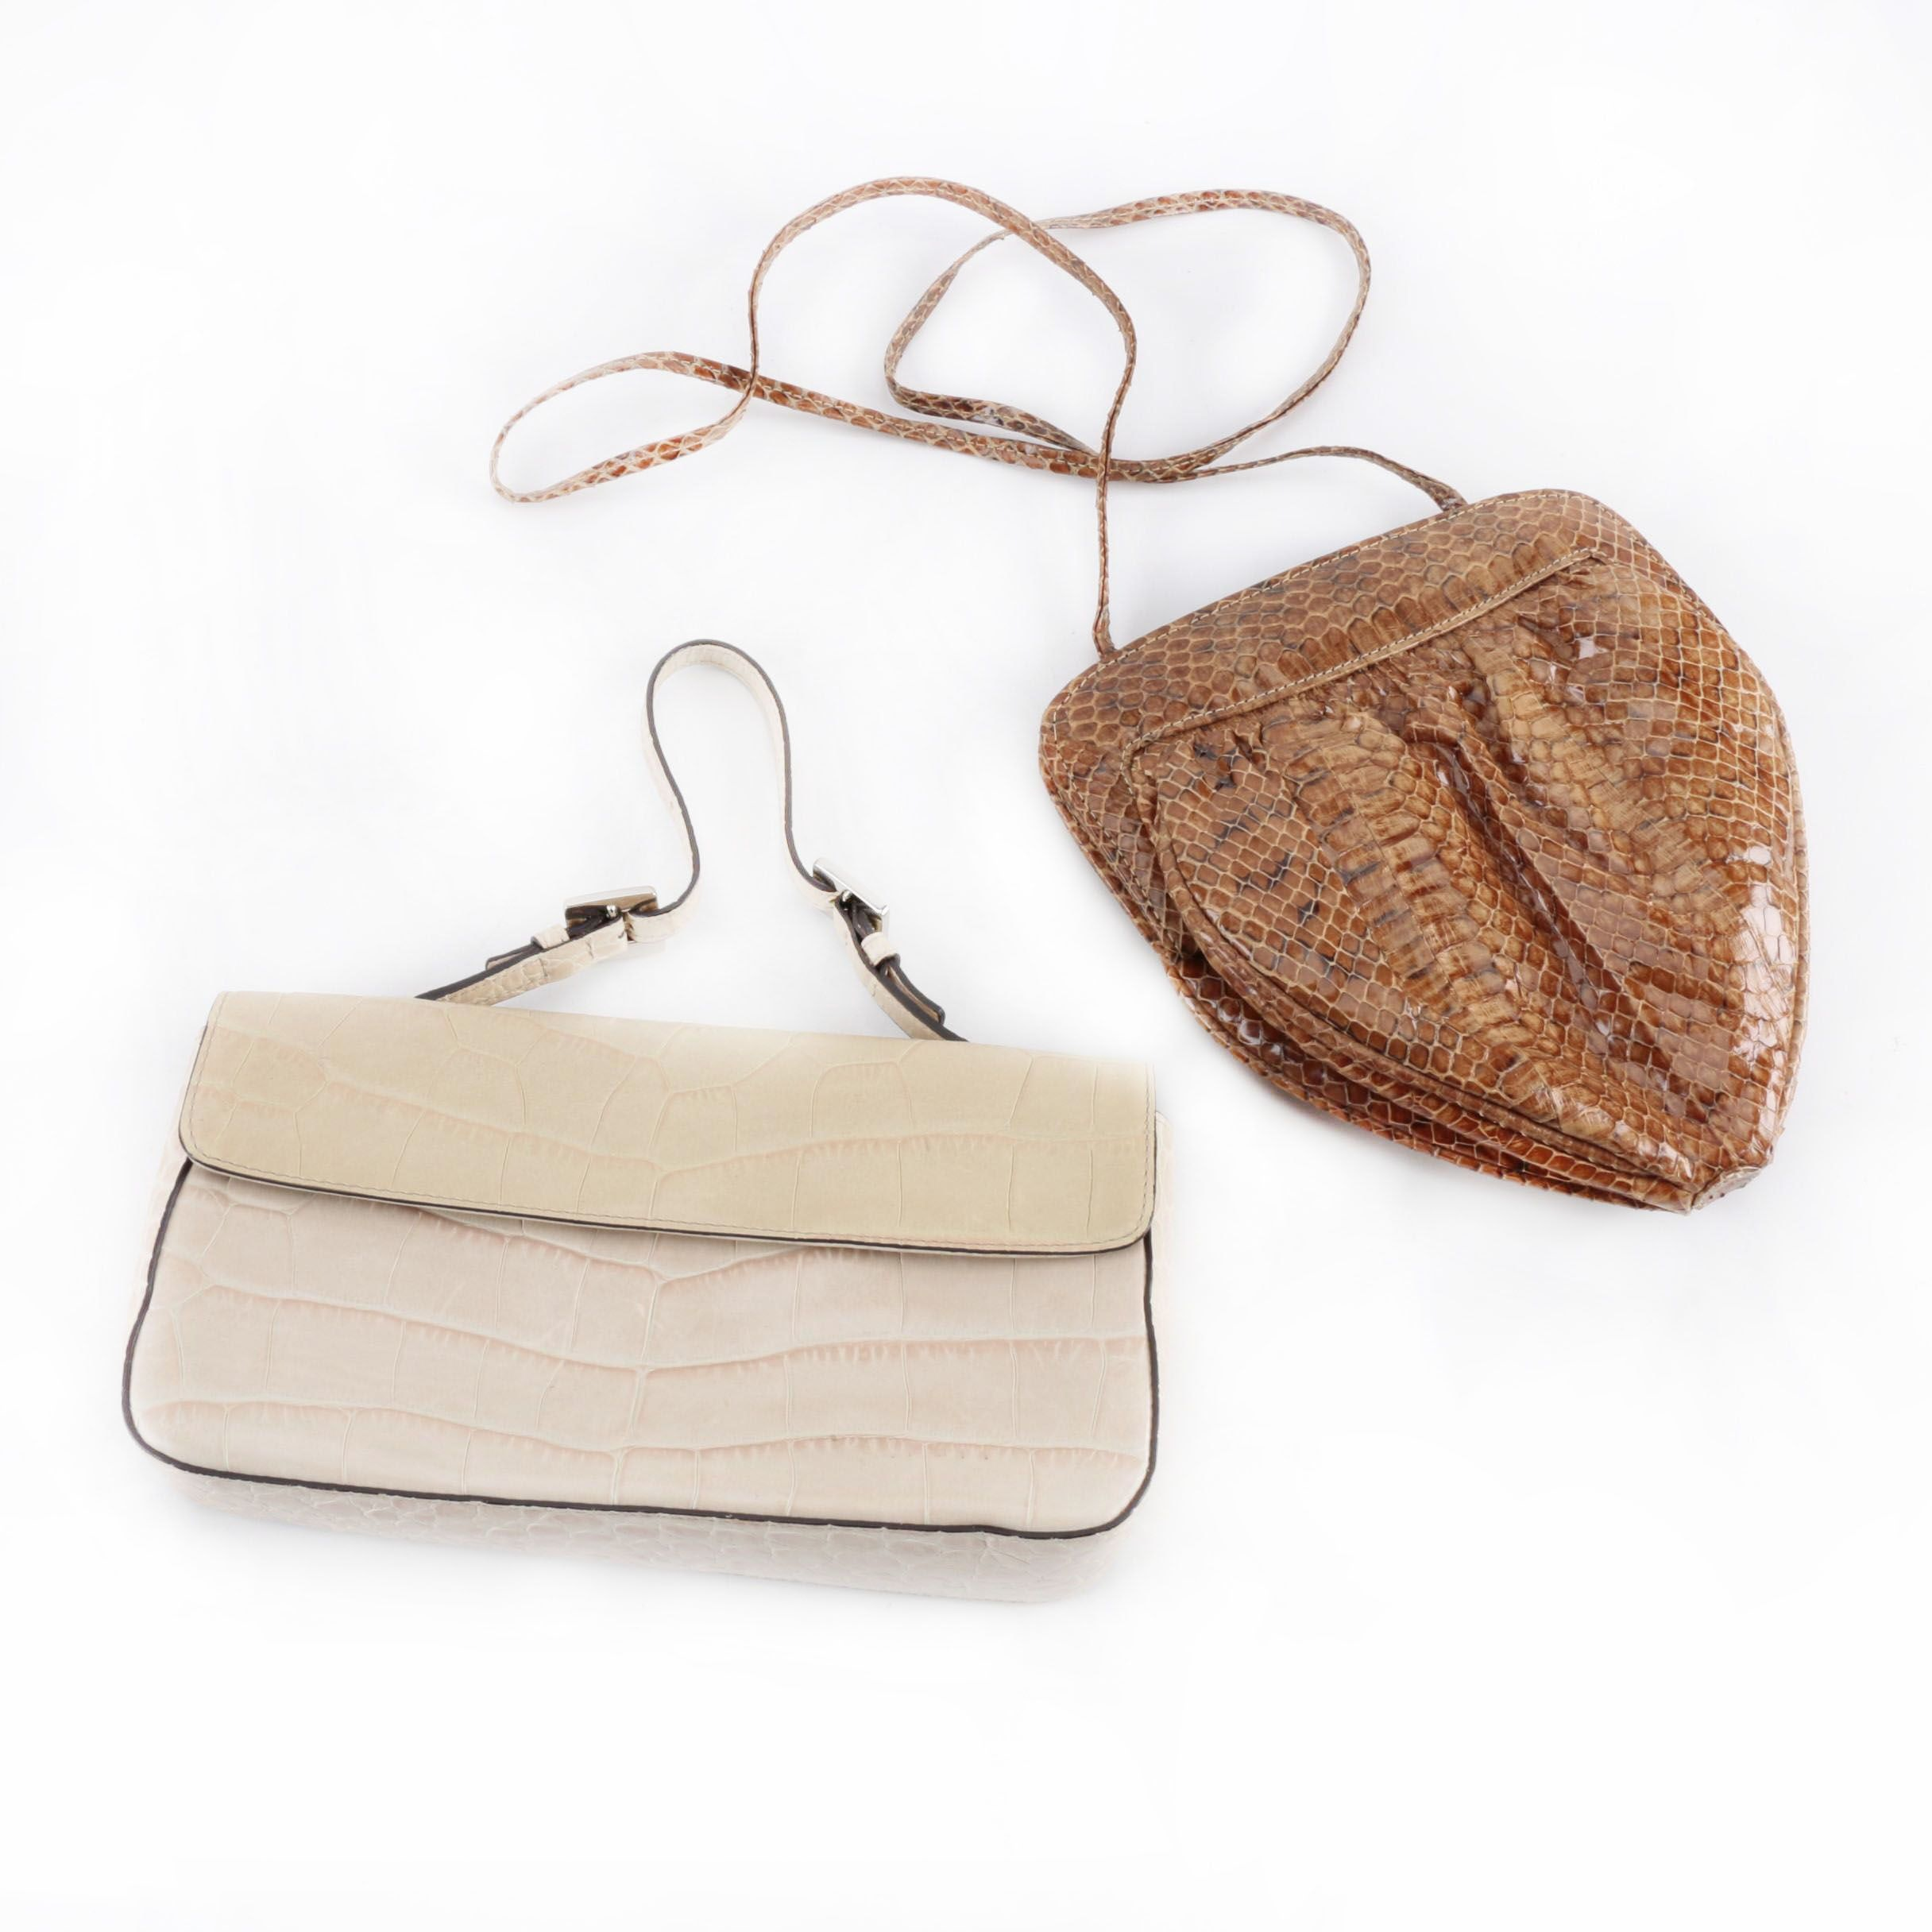 Snakeskin and Embossed Leather Handbags